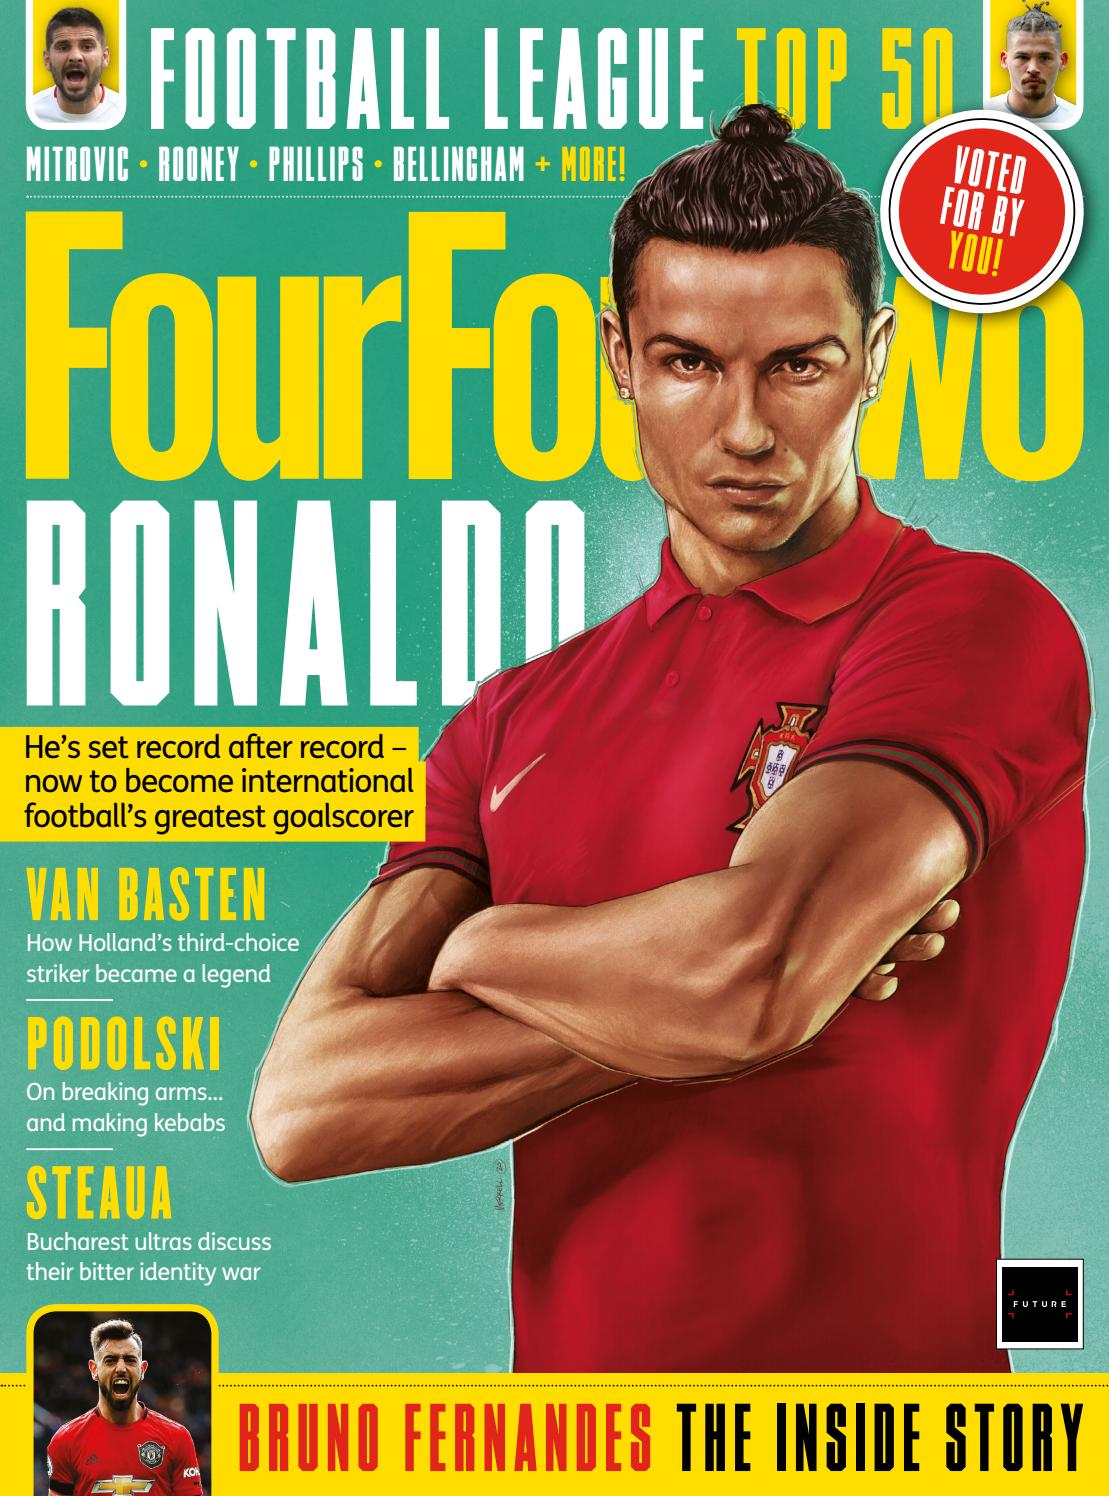 fourfourtwo latest issue,fourfourtwo latest news,fourfourtwo latest football news,fourfourtwo last 25 years,la masia fourfourtwo,frank lampard fourfourtwo,mejores jugadores de la historia fourfourtwo,100 mejores jugadores de la historia fourfourtwo,fourfourtwo top 100 last 25 years,fourfourtwo là tạp chí gì,tạp chí fourfourtwo,ourfourtwo là một trong những tạp chí chuyên biệt lớn nhất thế giới của môn thể thao nào